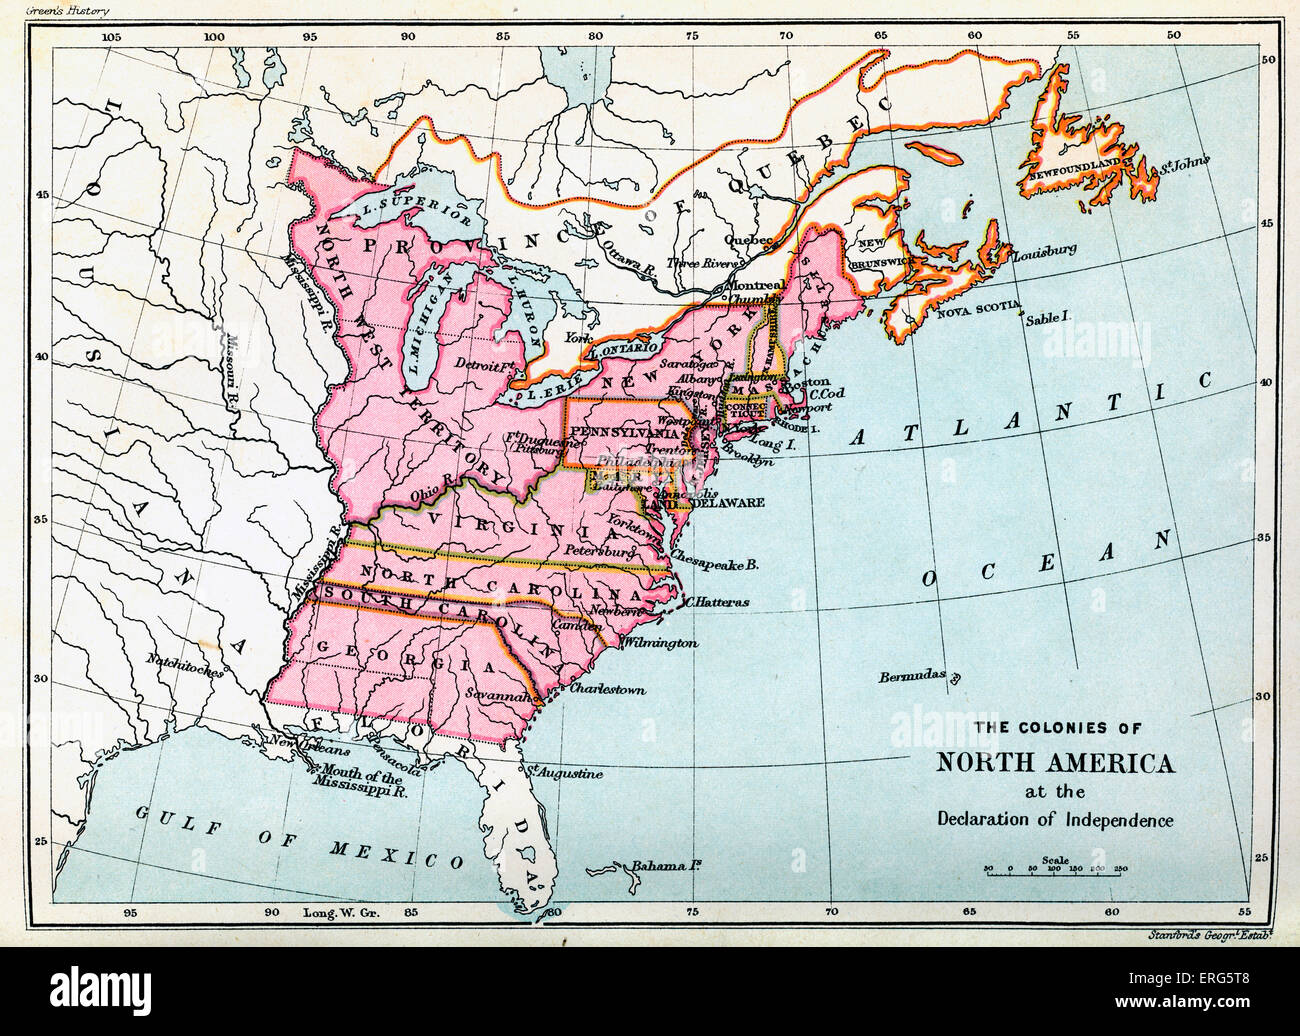 Colonies of North America in 1776, at the United States